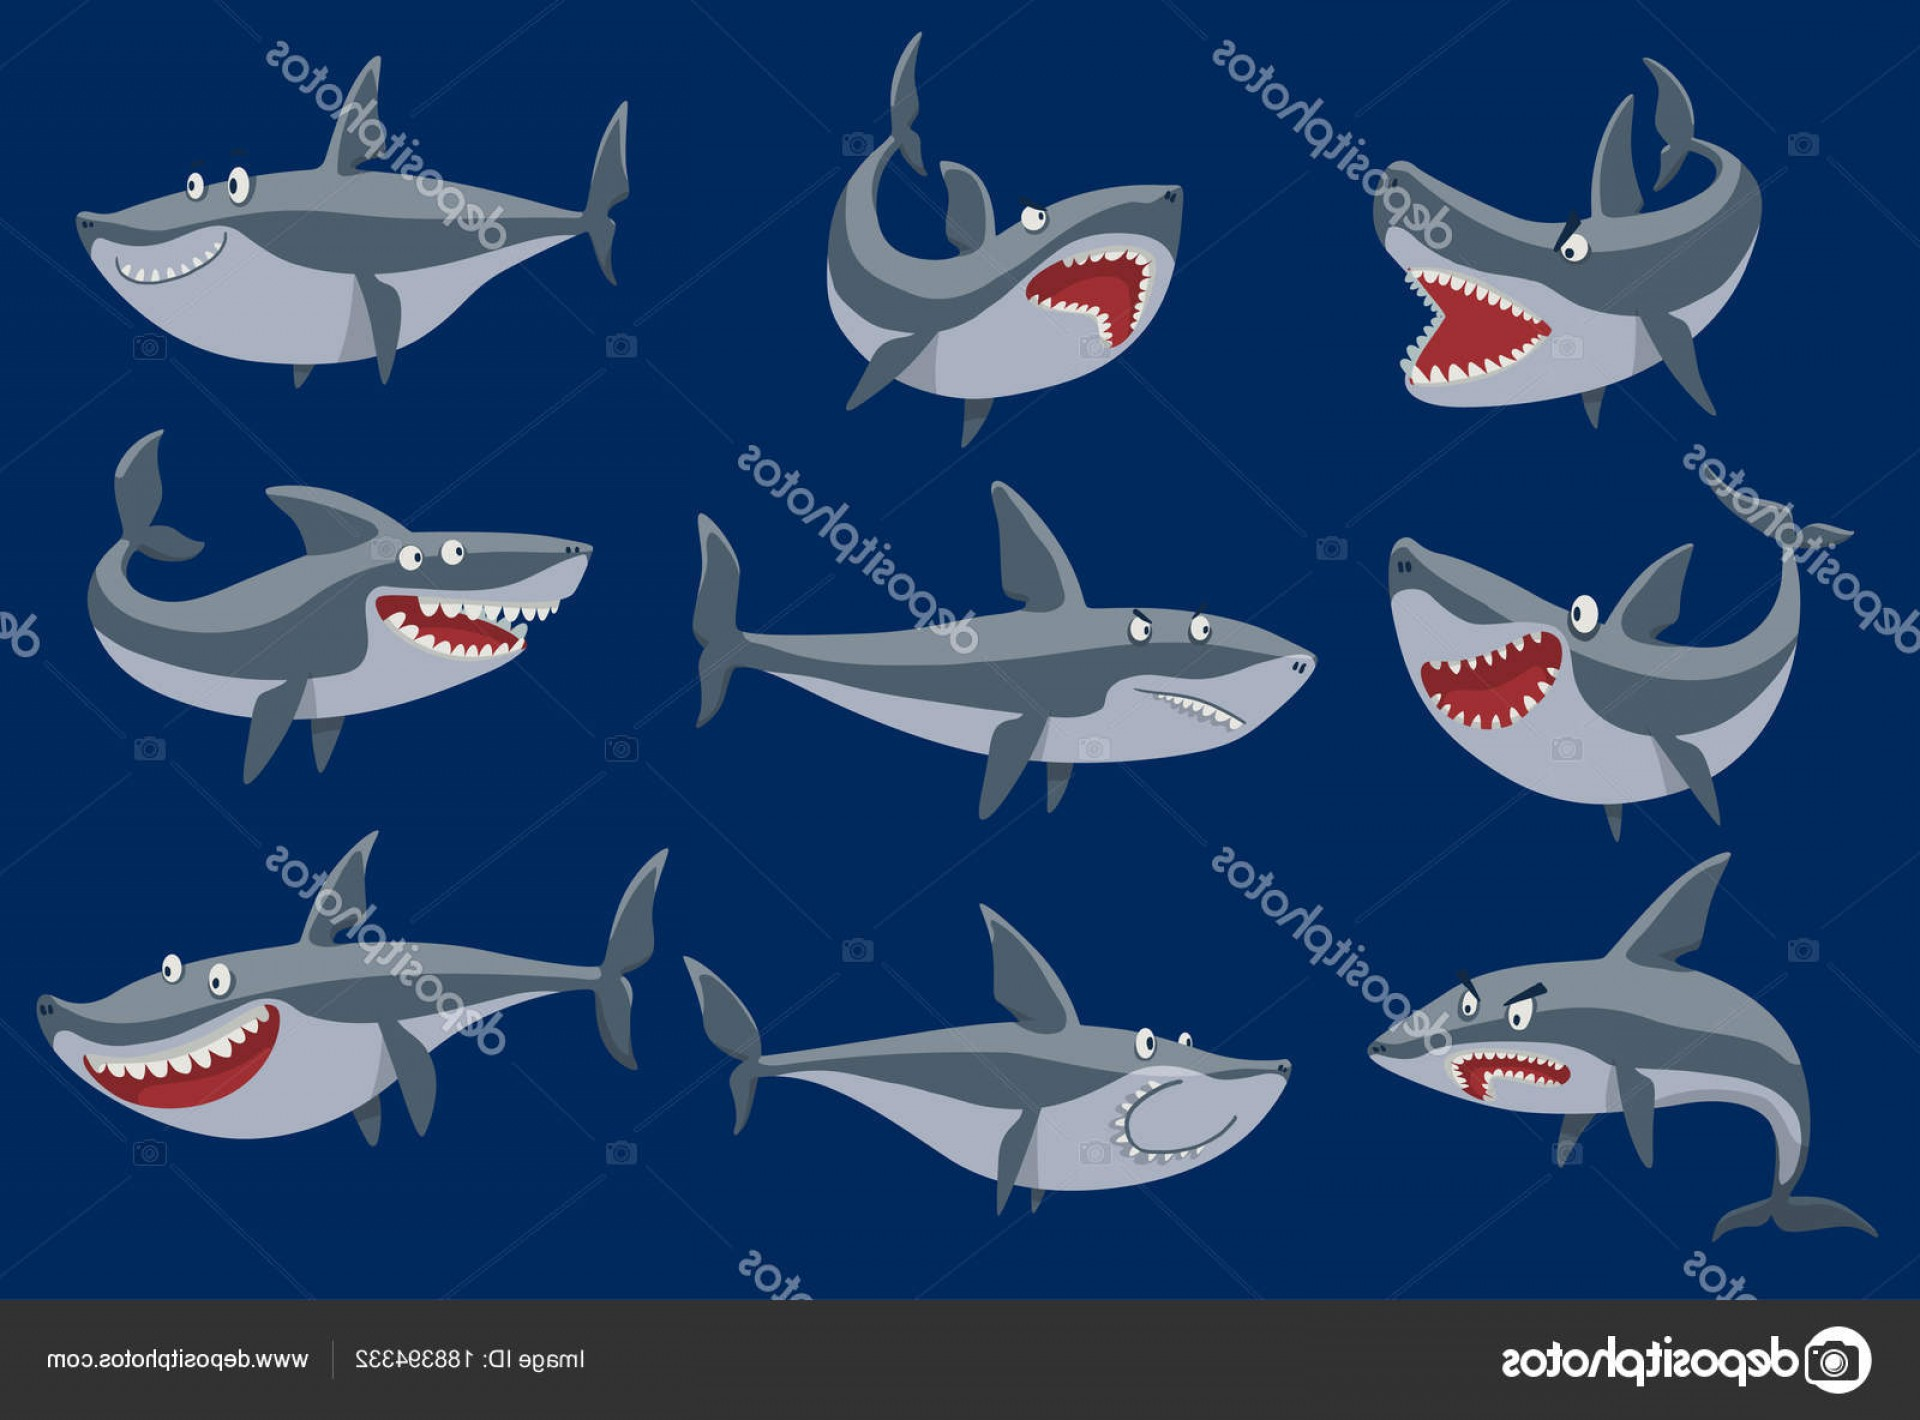 Cool Evil Vectors: Stock Illustration Vector Funny Cartoon Shark Fish